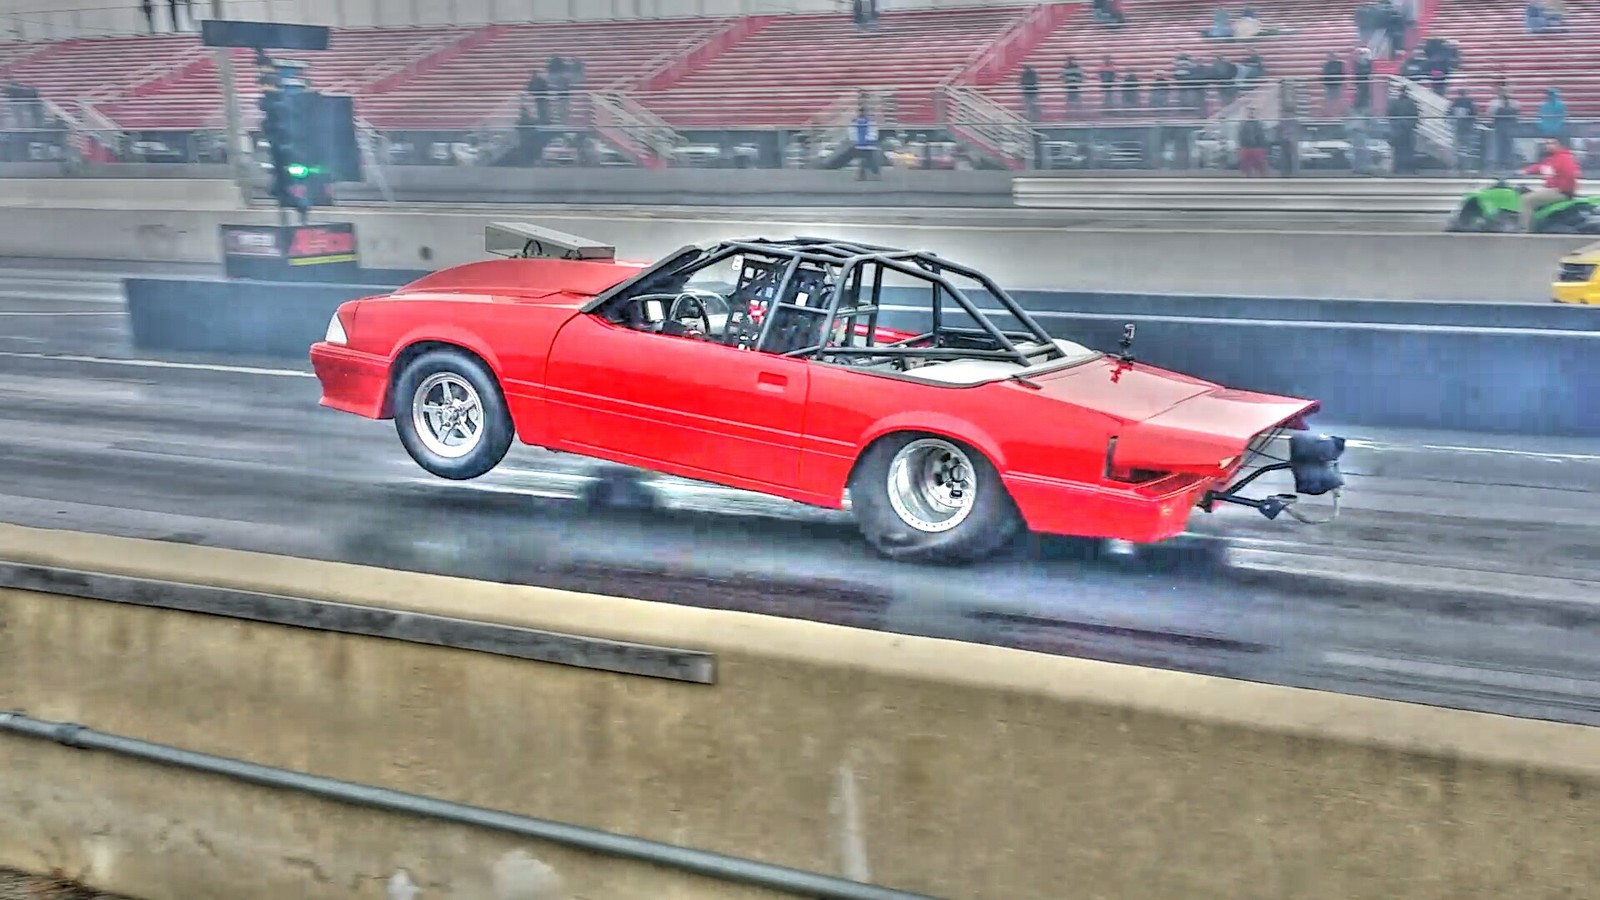 Ford Mustang lx runs 7.850 @ 174.000 MPH in the 1/4 mile